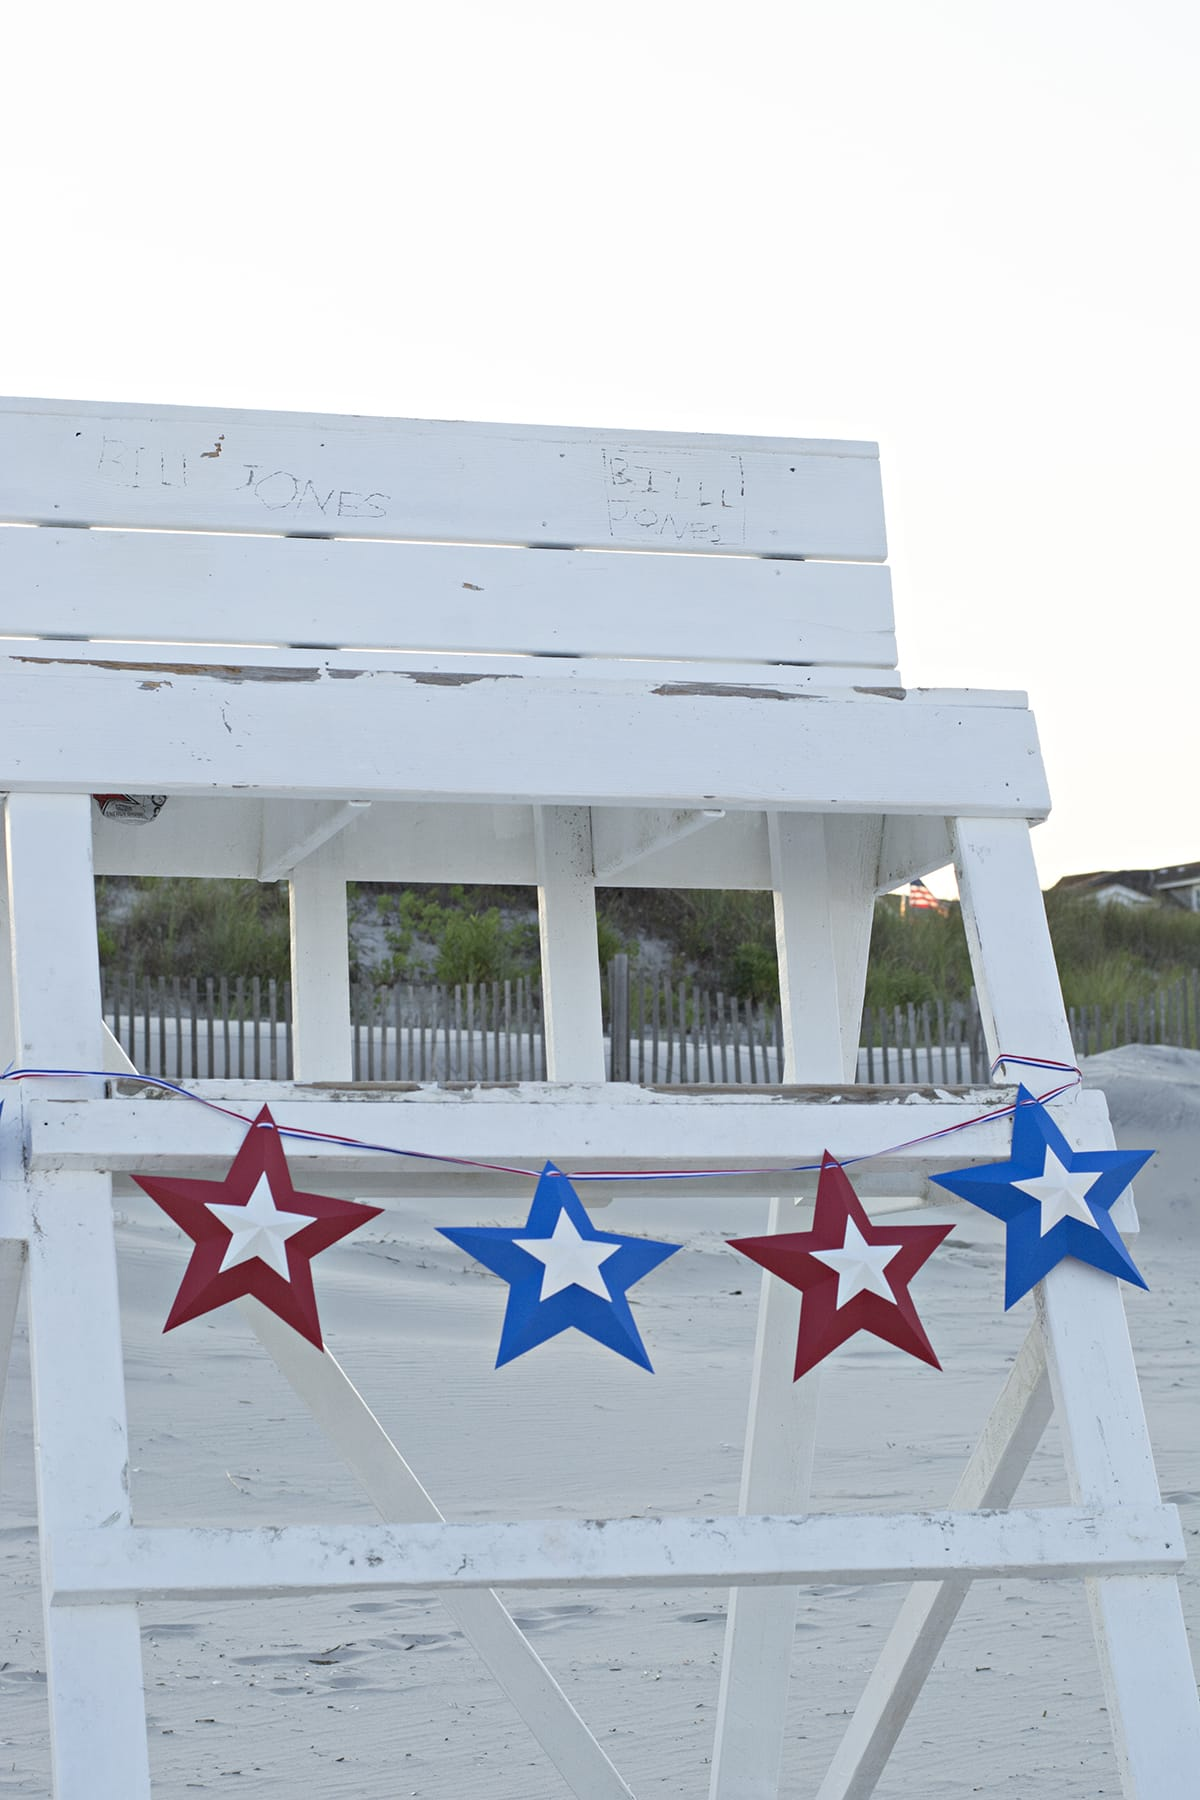 fourth of July star bunting hanging on a lifeguard stand as photo back drop